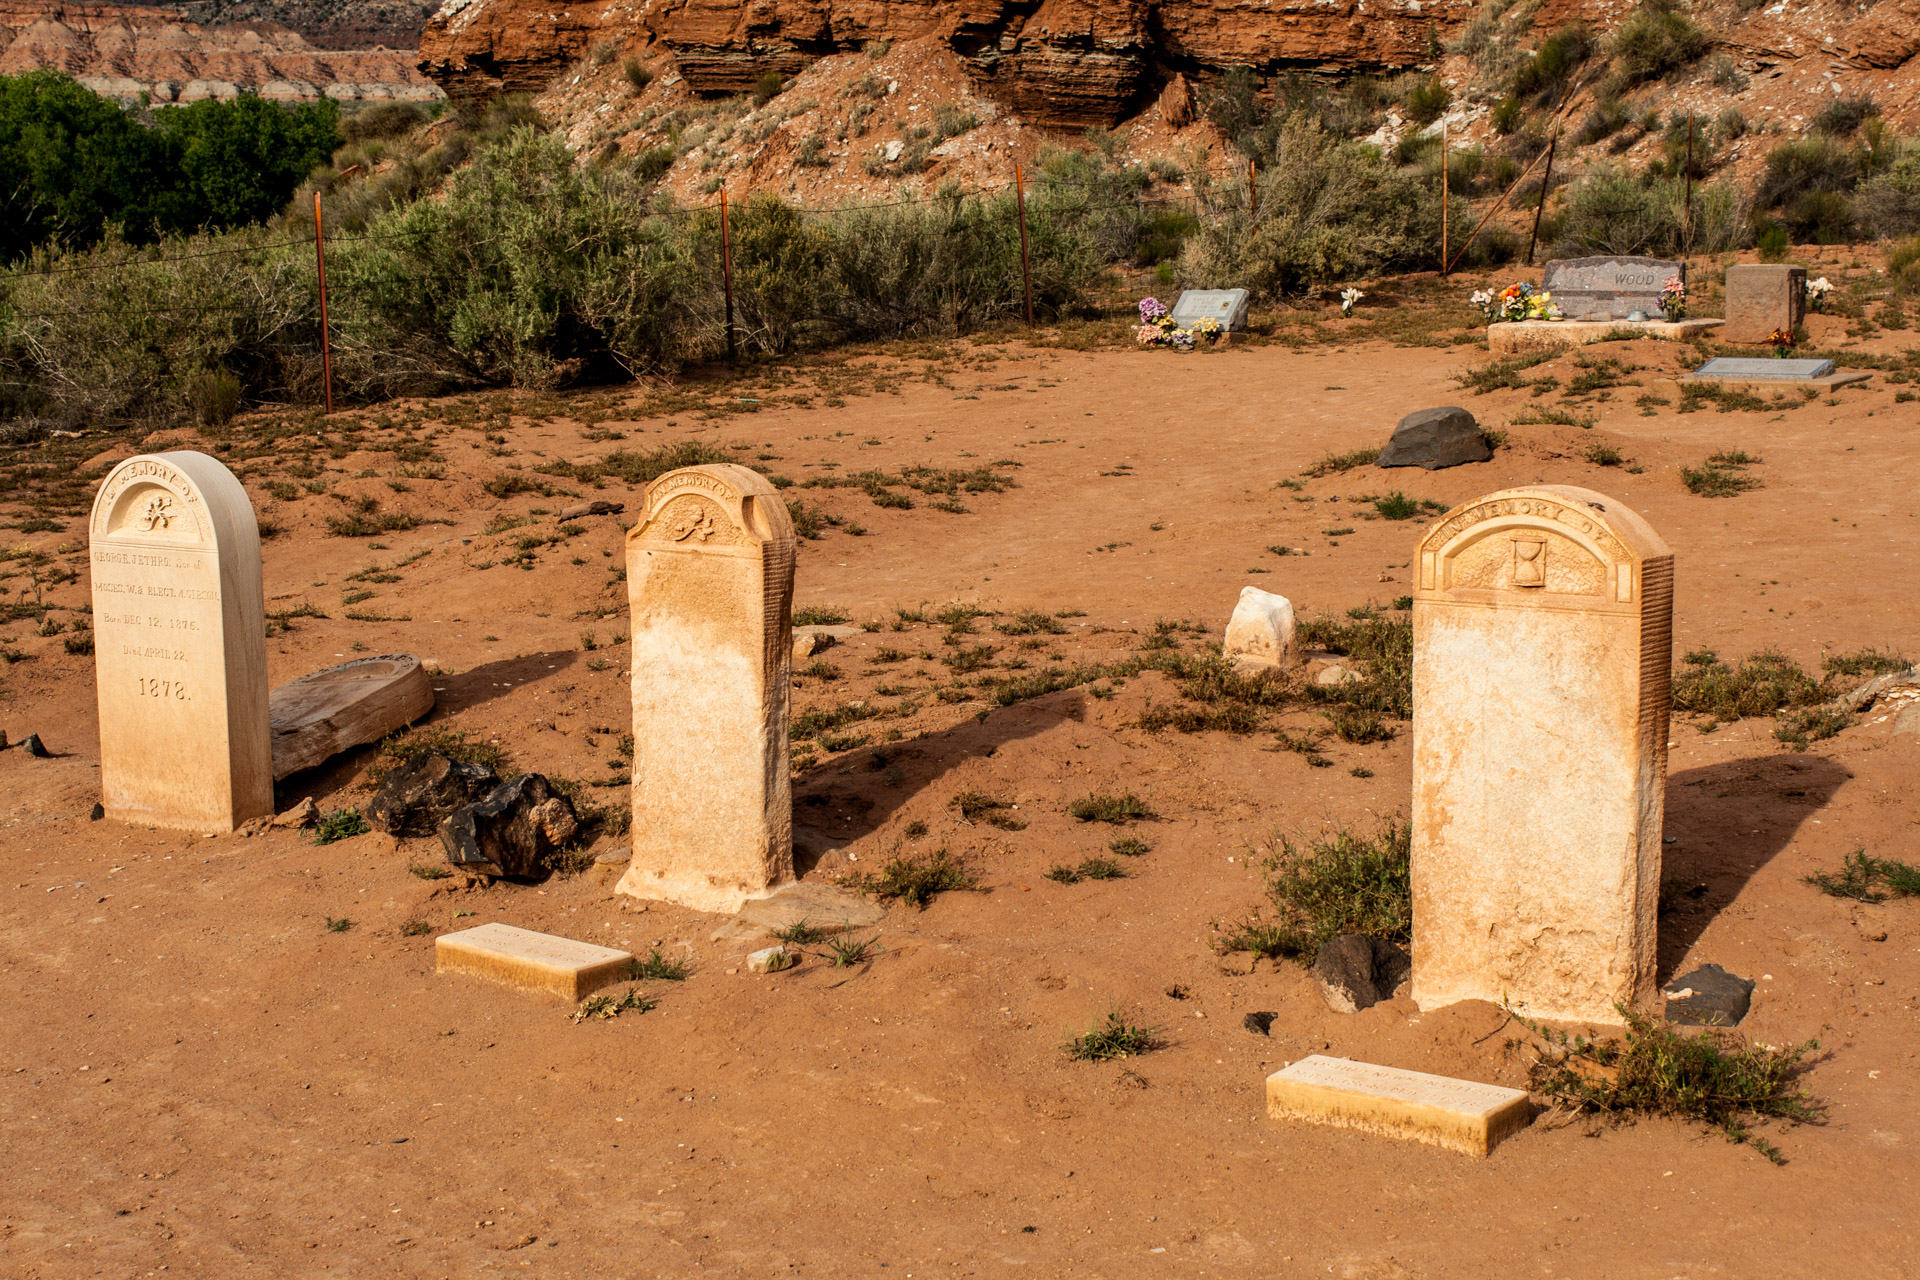 A Desert Ghost Town Cemetery (three stones)